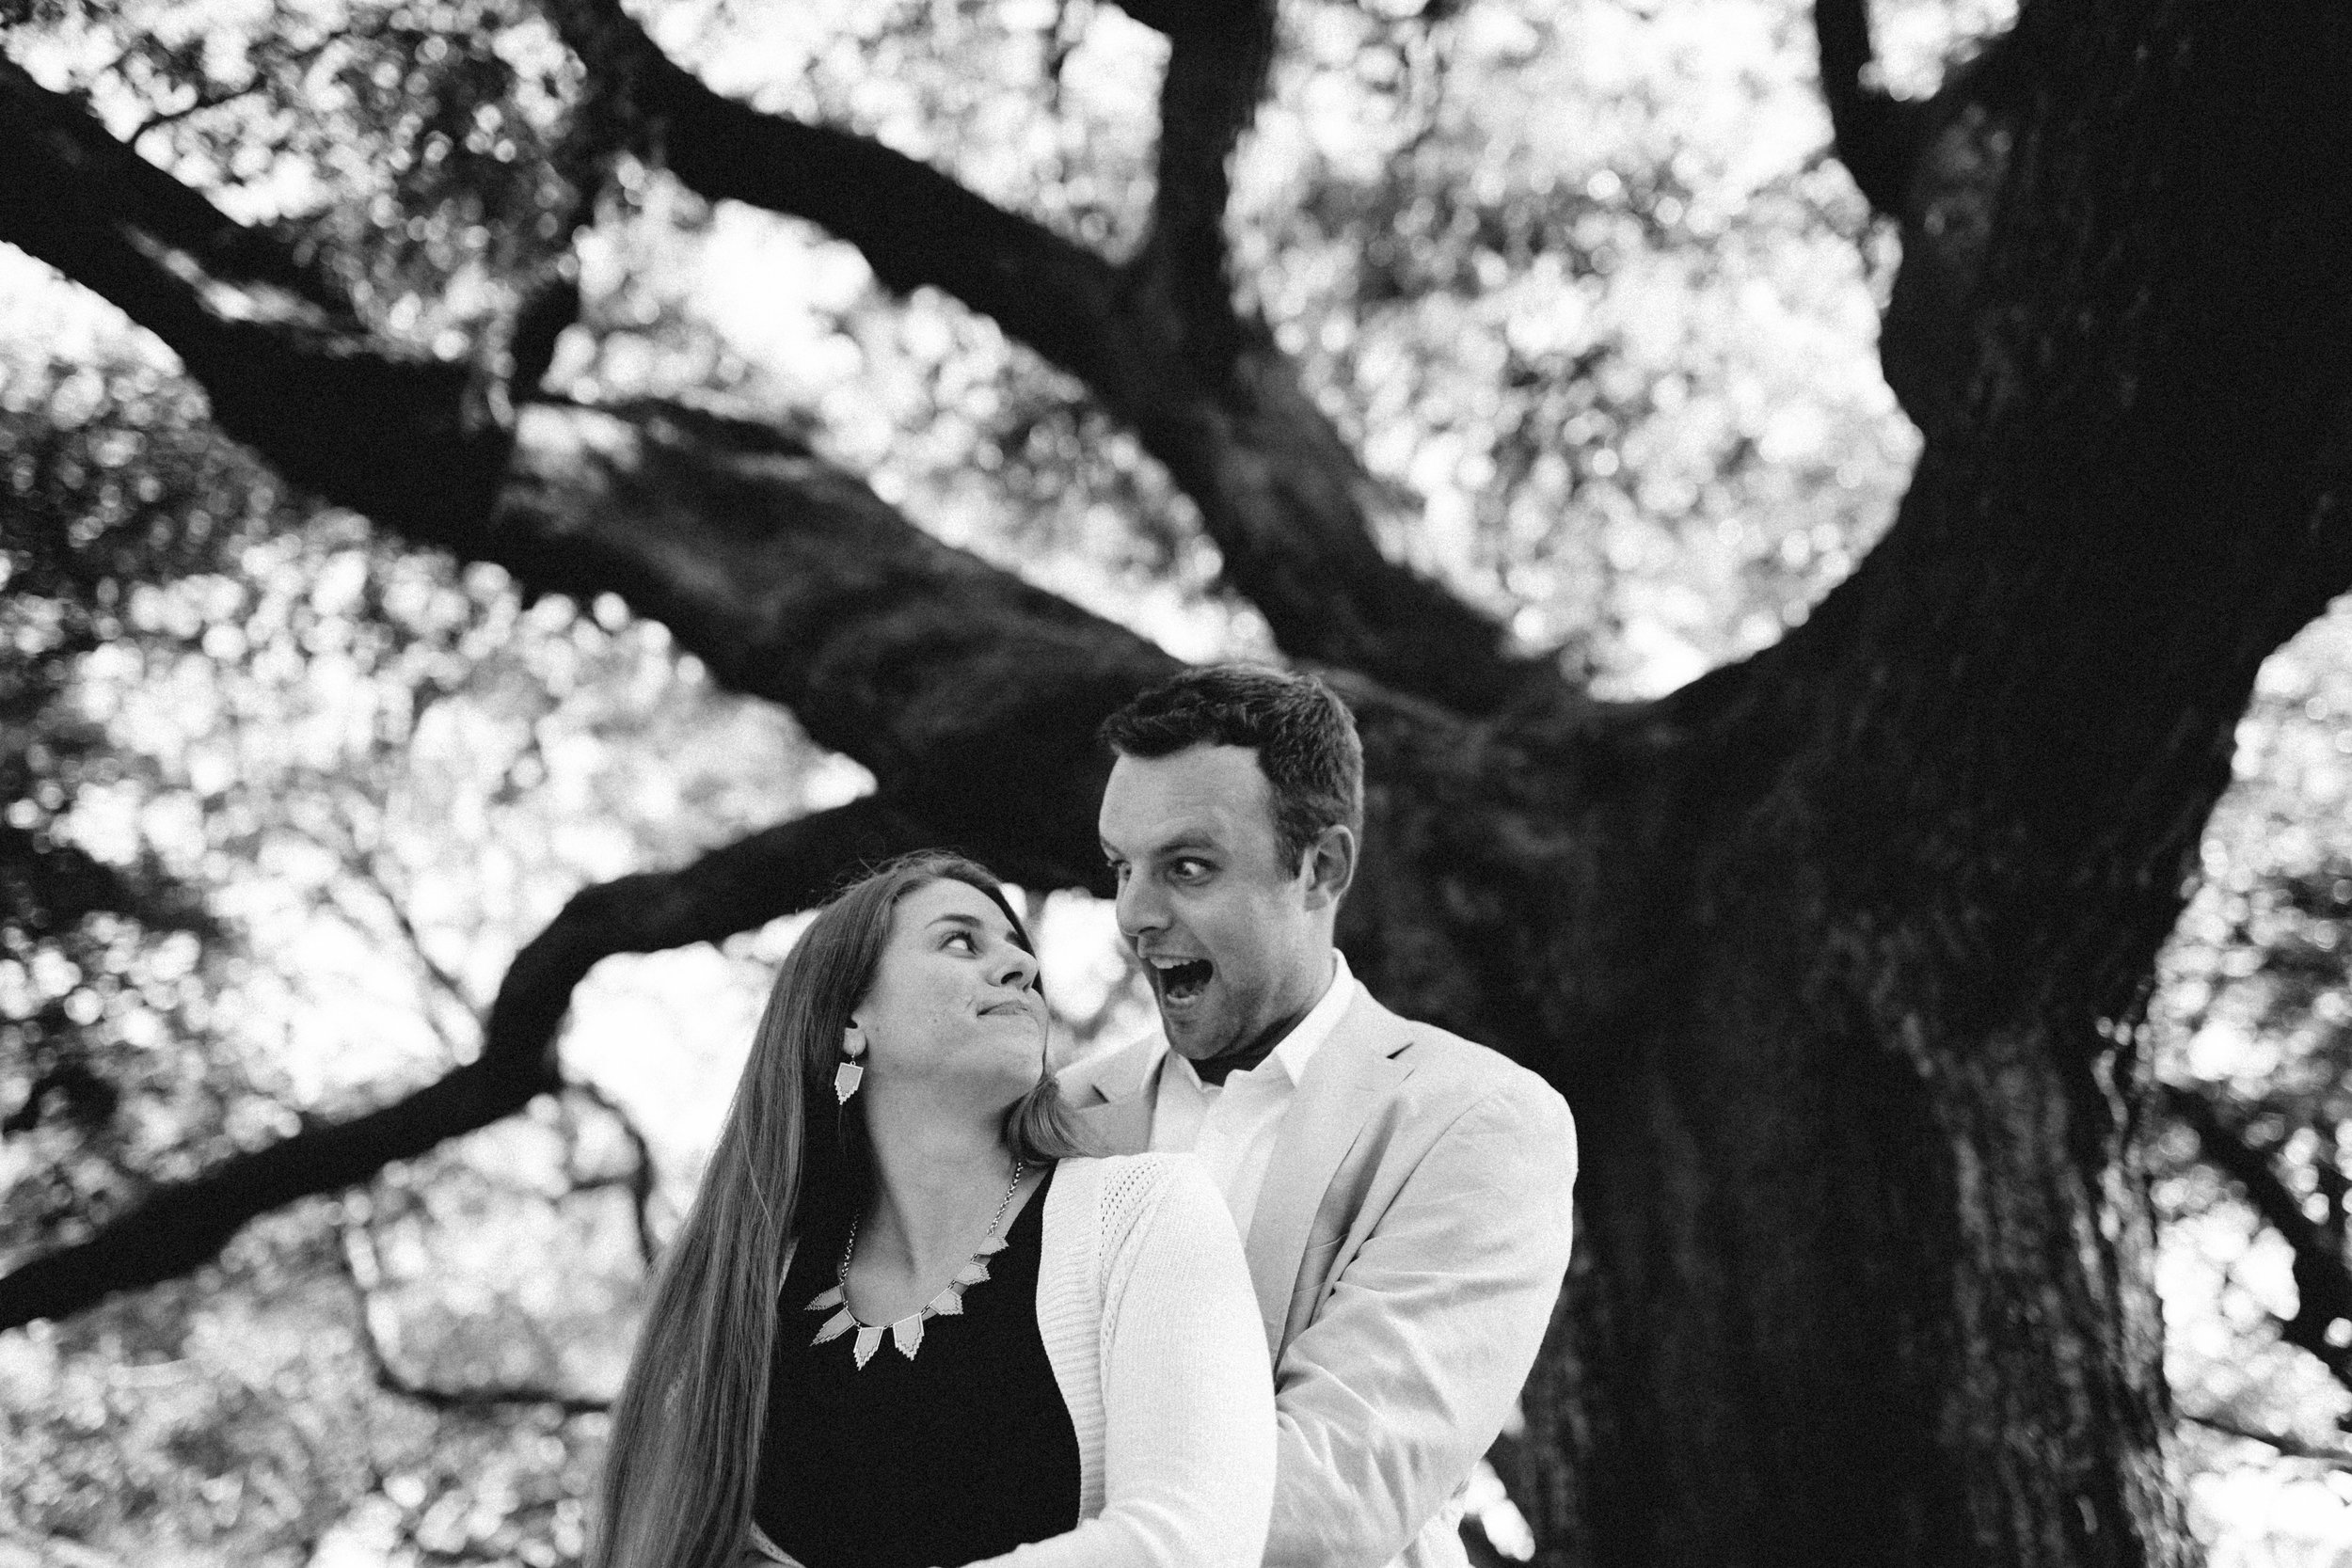 ShadowShinePictures-RachelDavid-Eudy-Engagement-Photography-92.jpg